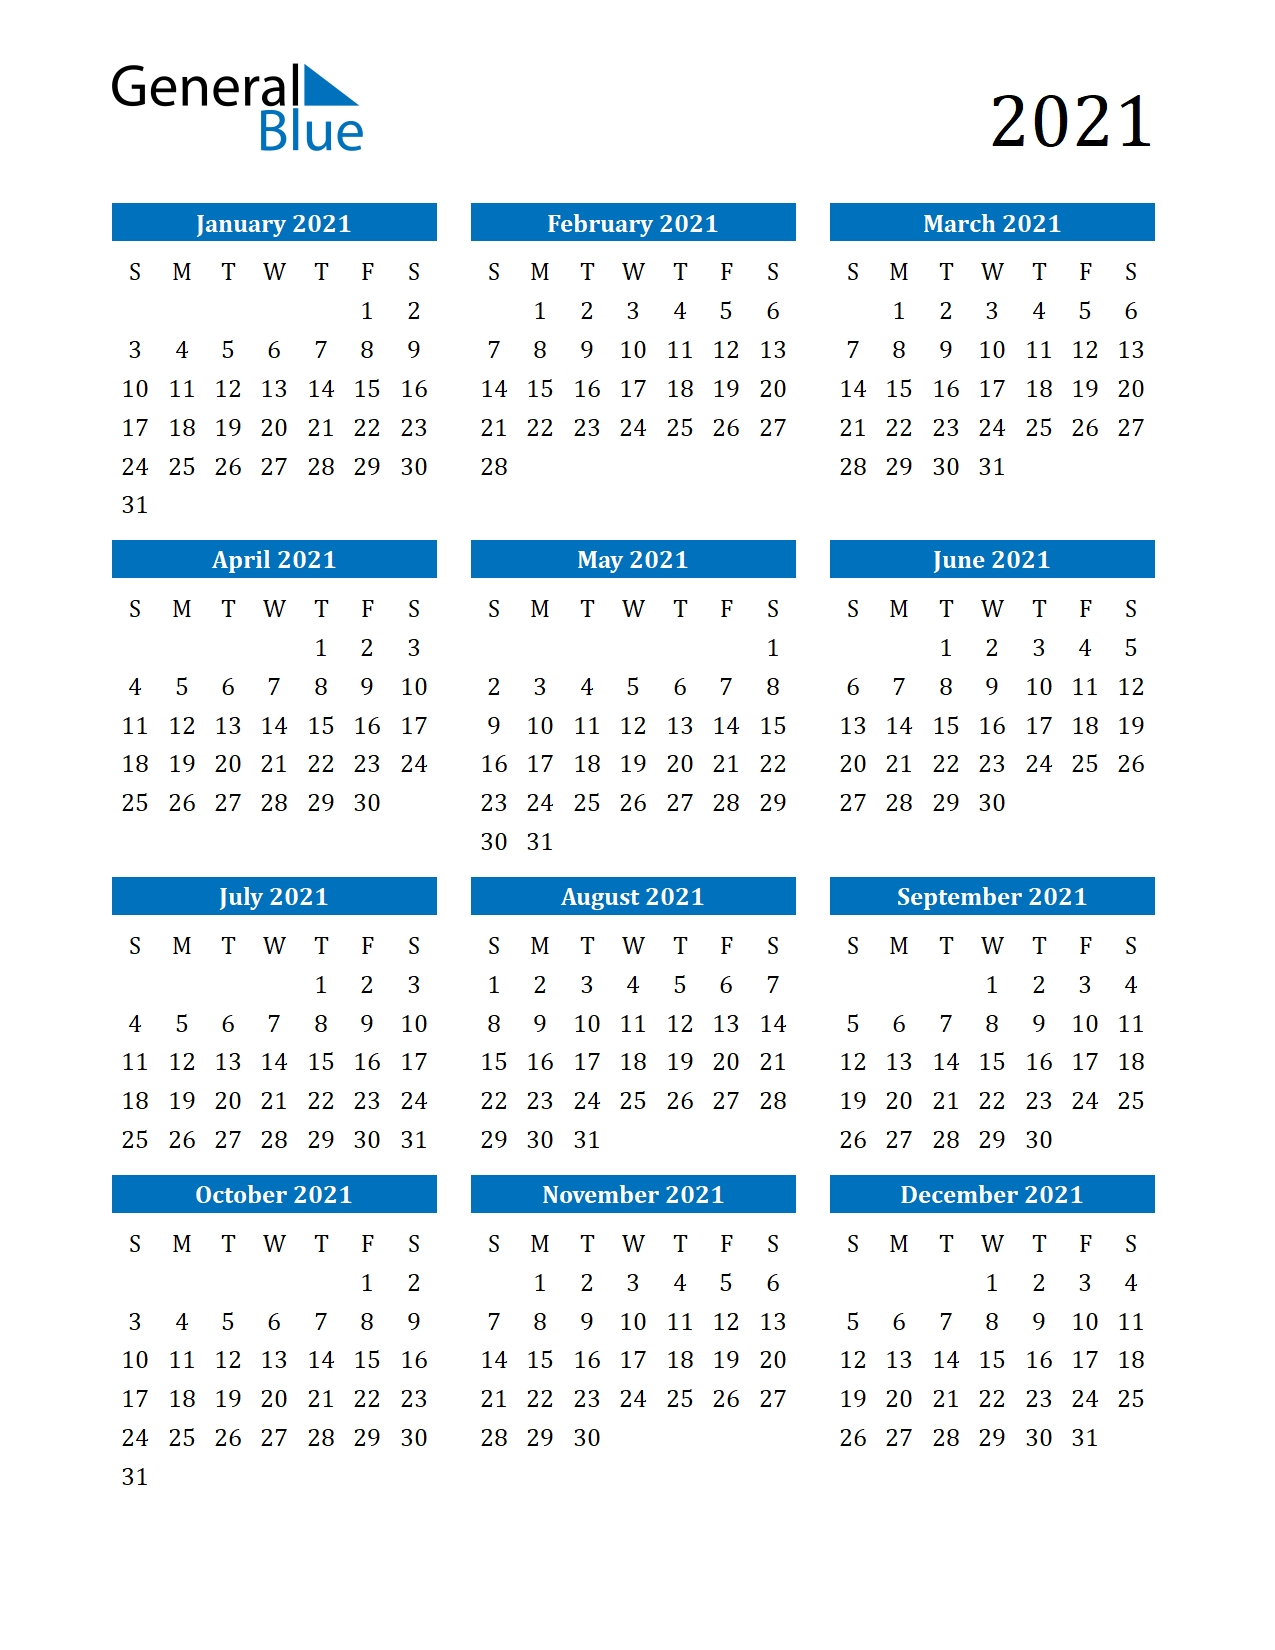 Get 3 Month Calendar Template Word 2021